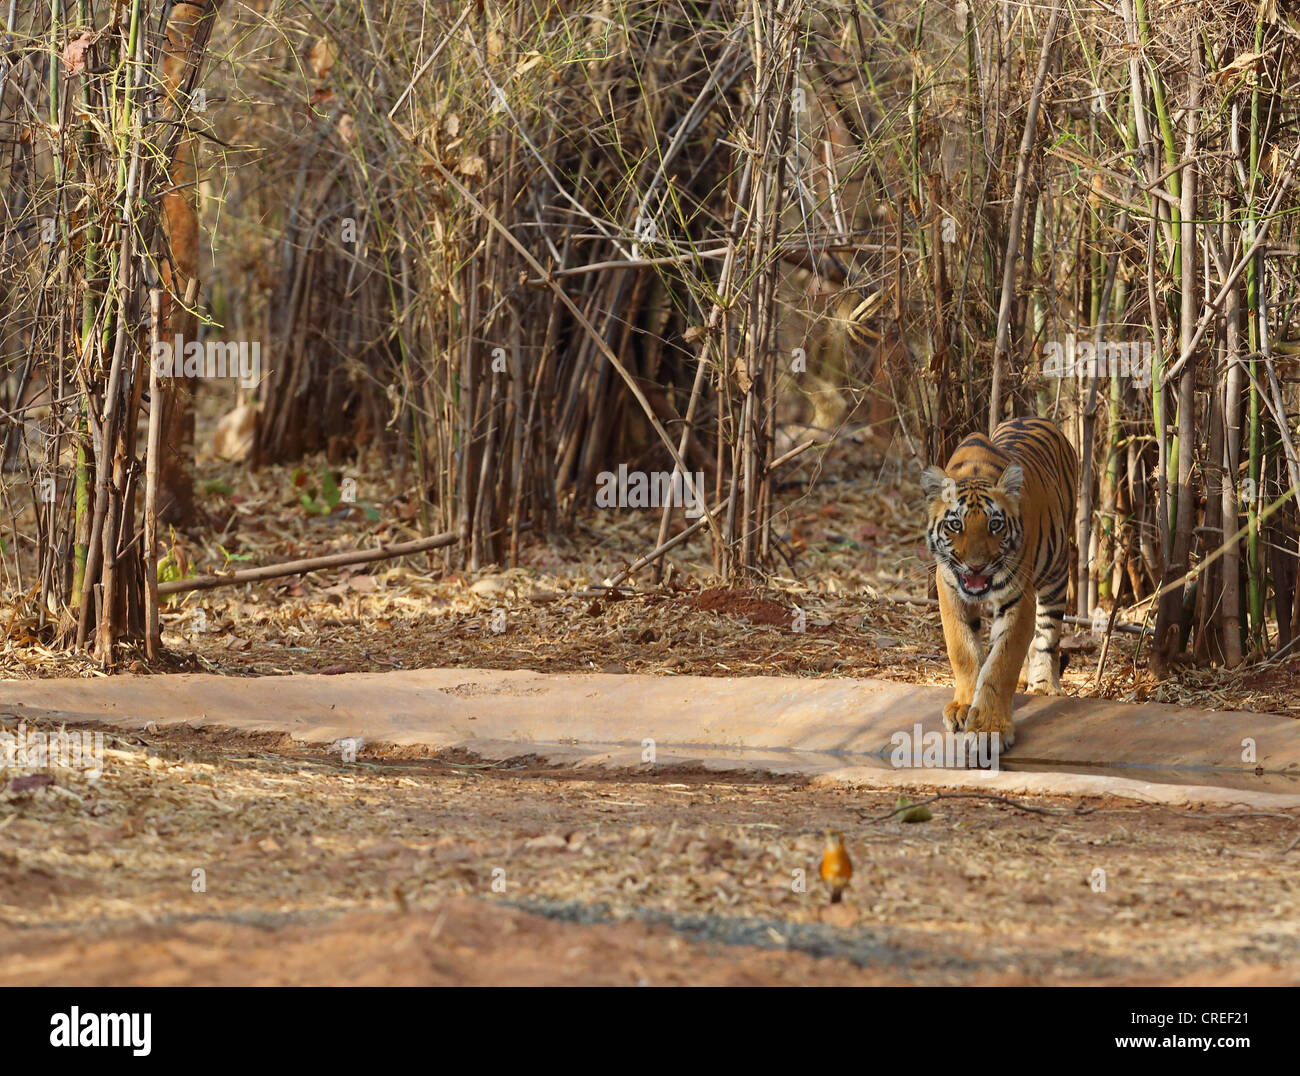 Tiger cub about to enter waterhole and staring at photographer in Tadoba jungle, India. - Stock Image